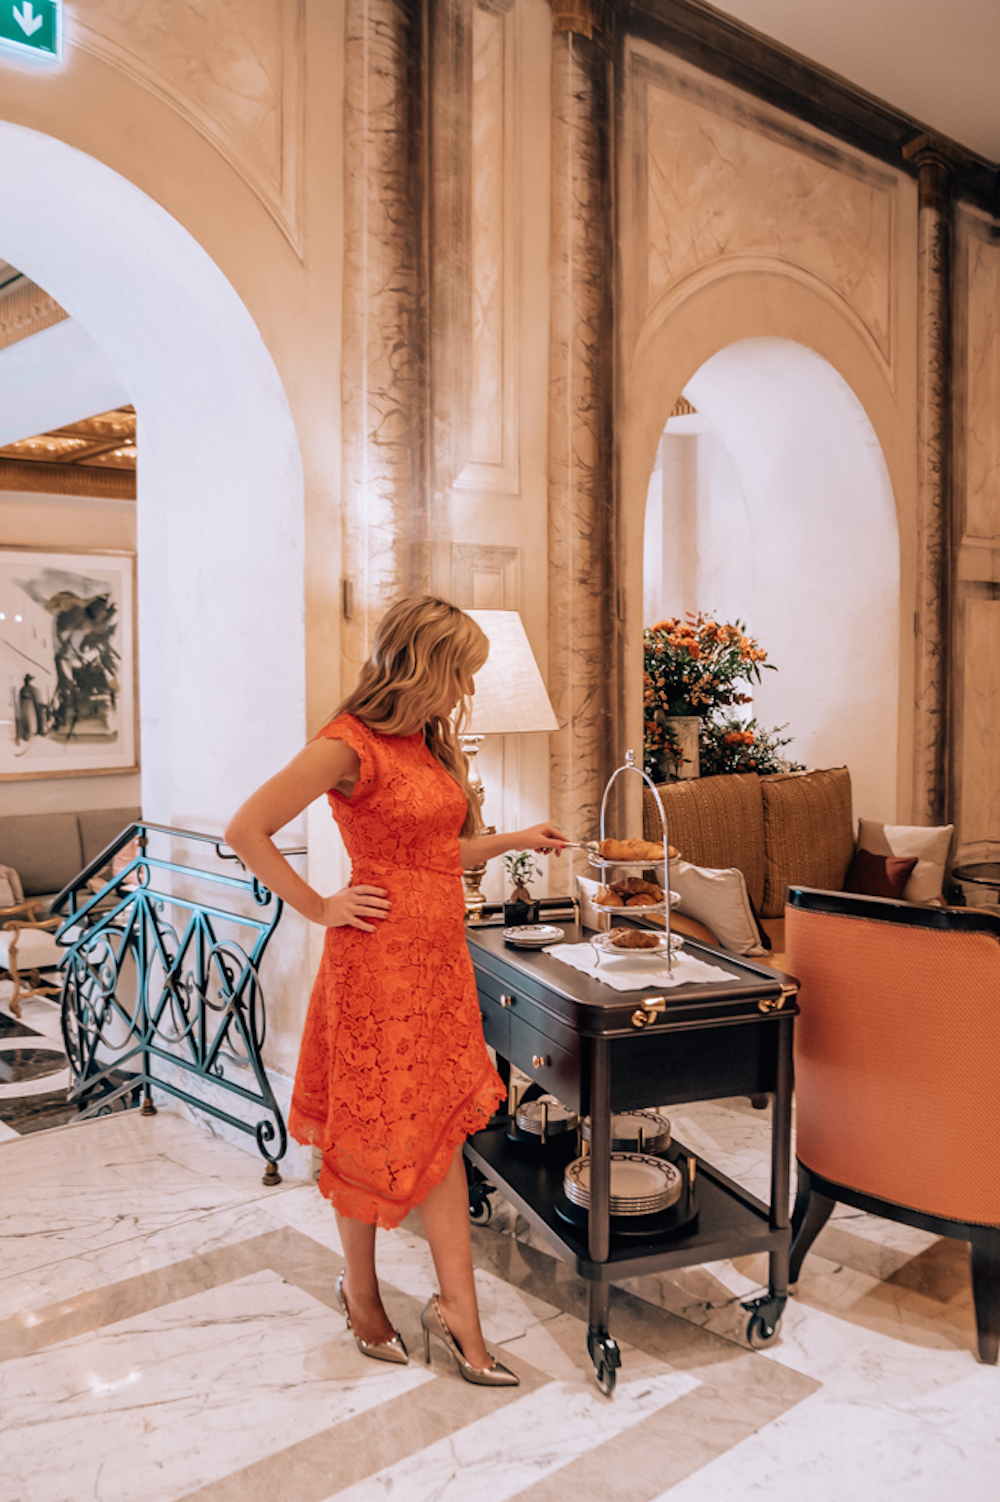 Finding Paradise At Hotel Eden Rome Italy Silverspoon London